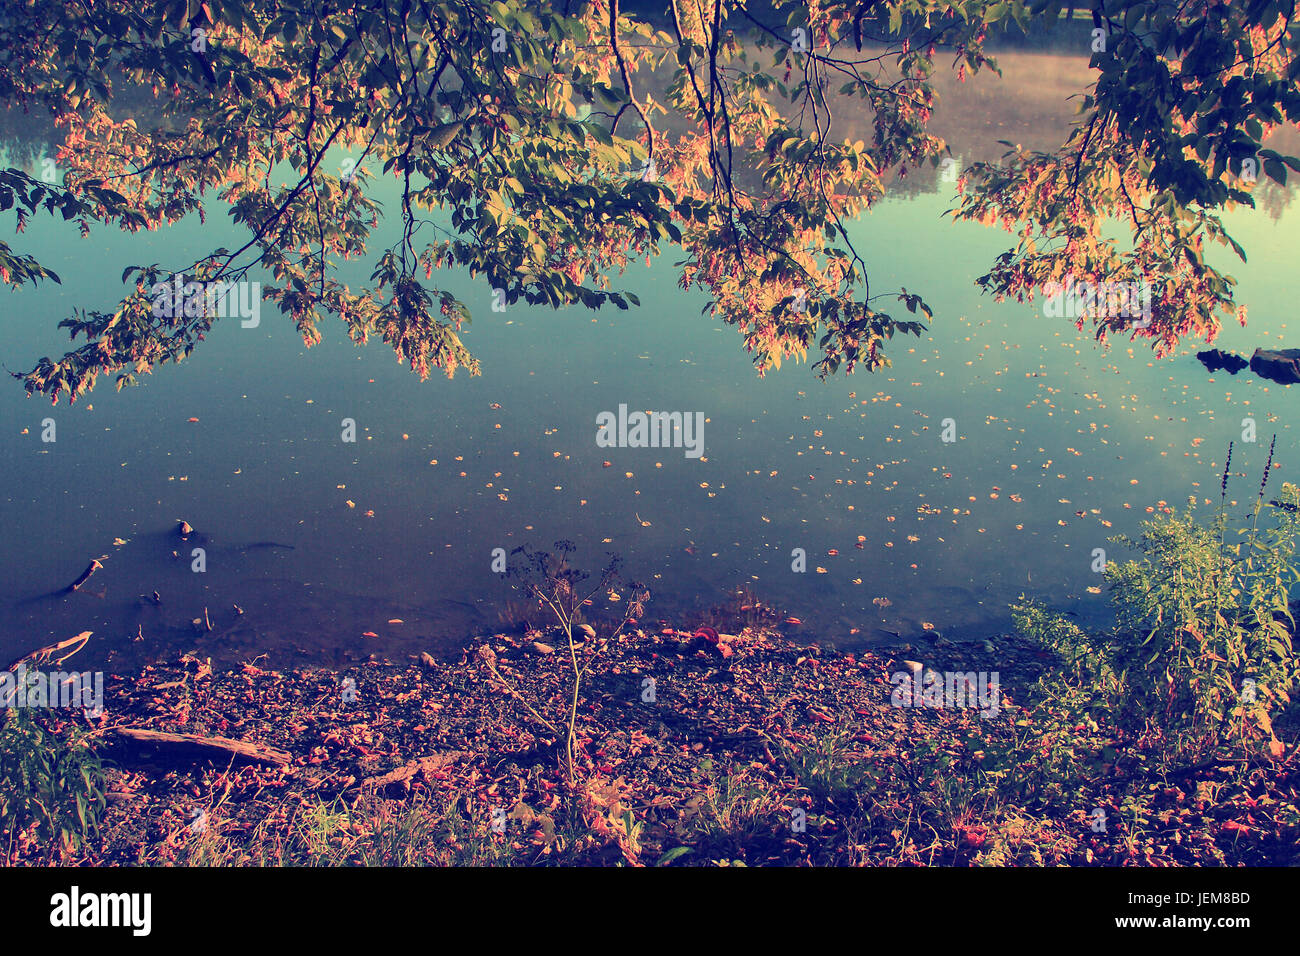 Vintage photo of autumn leaves and background lake - Stock Image